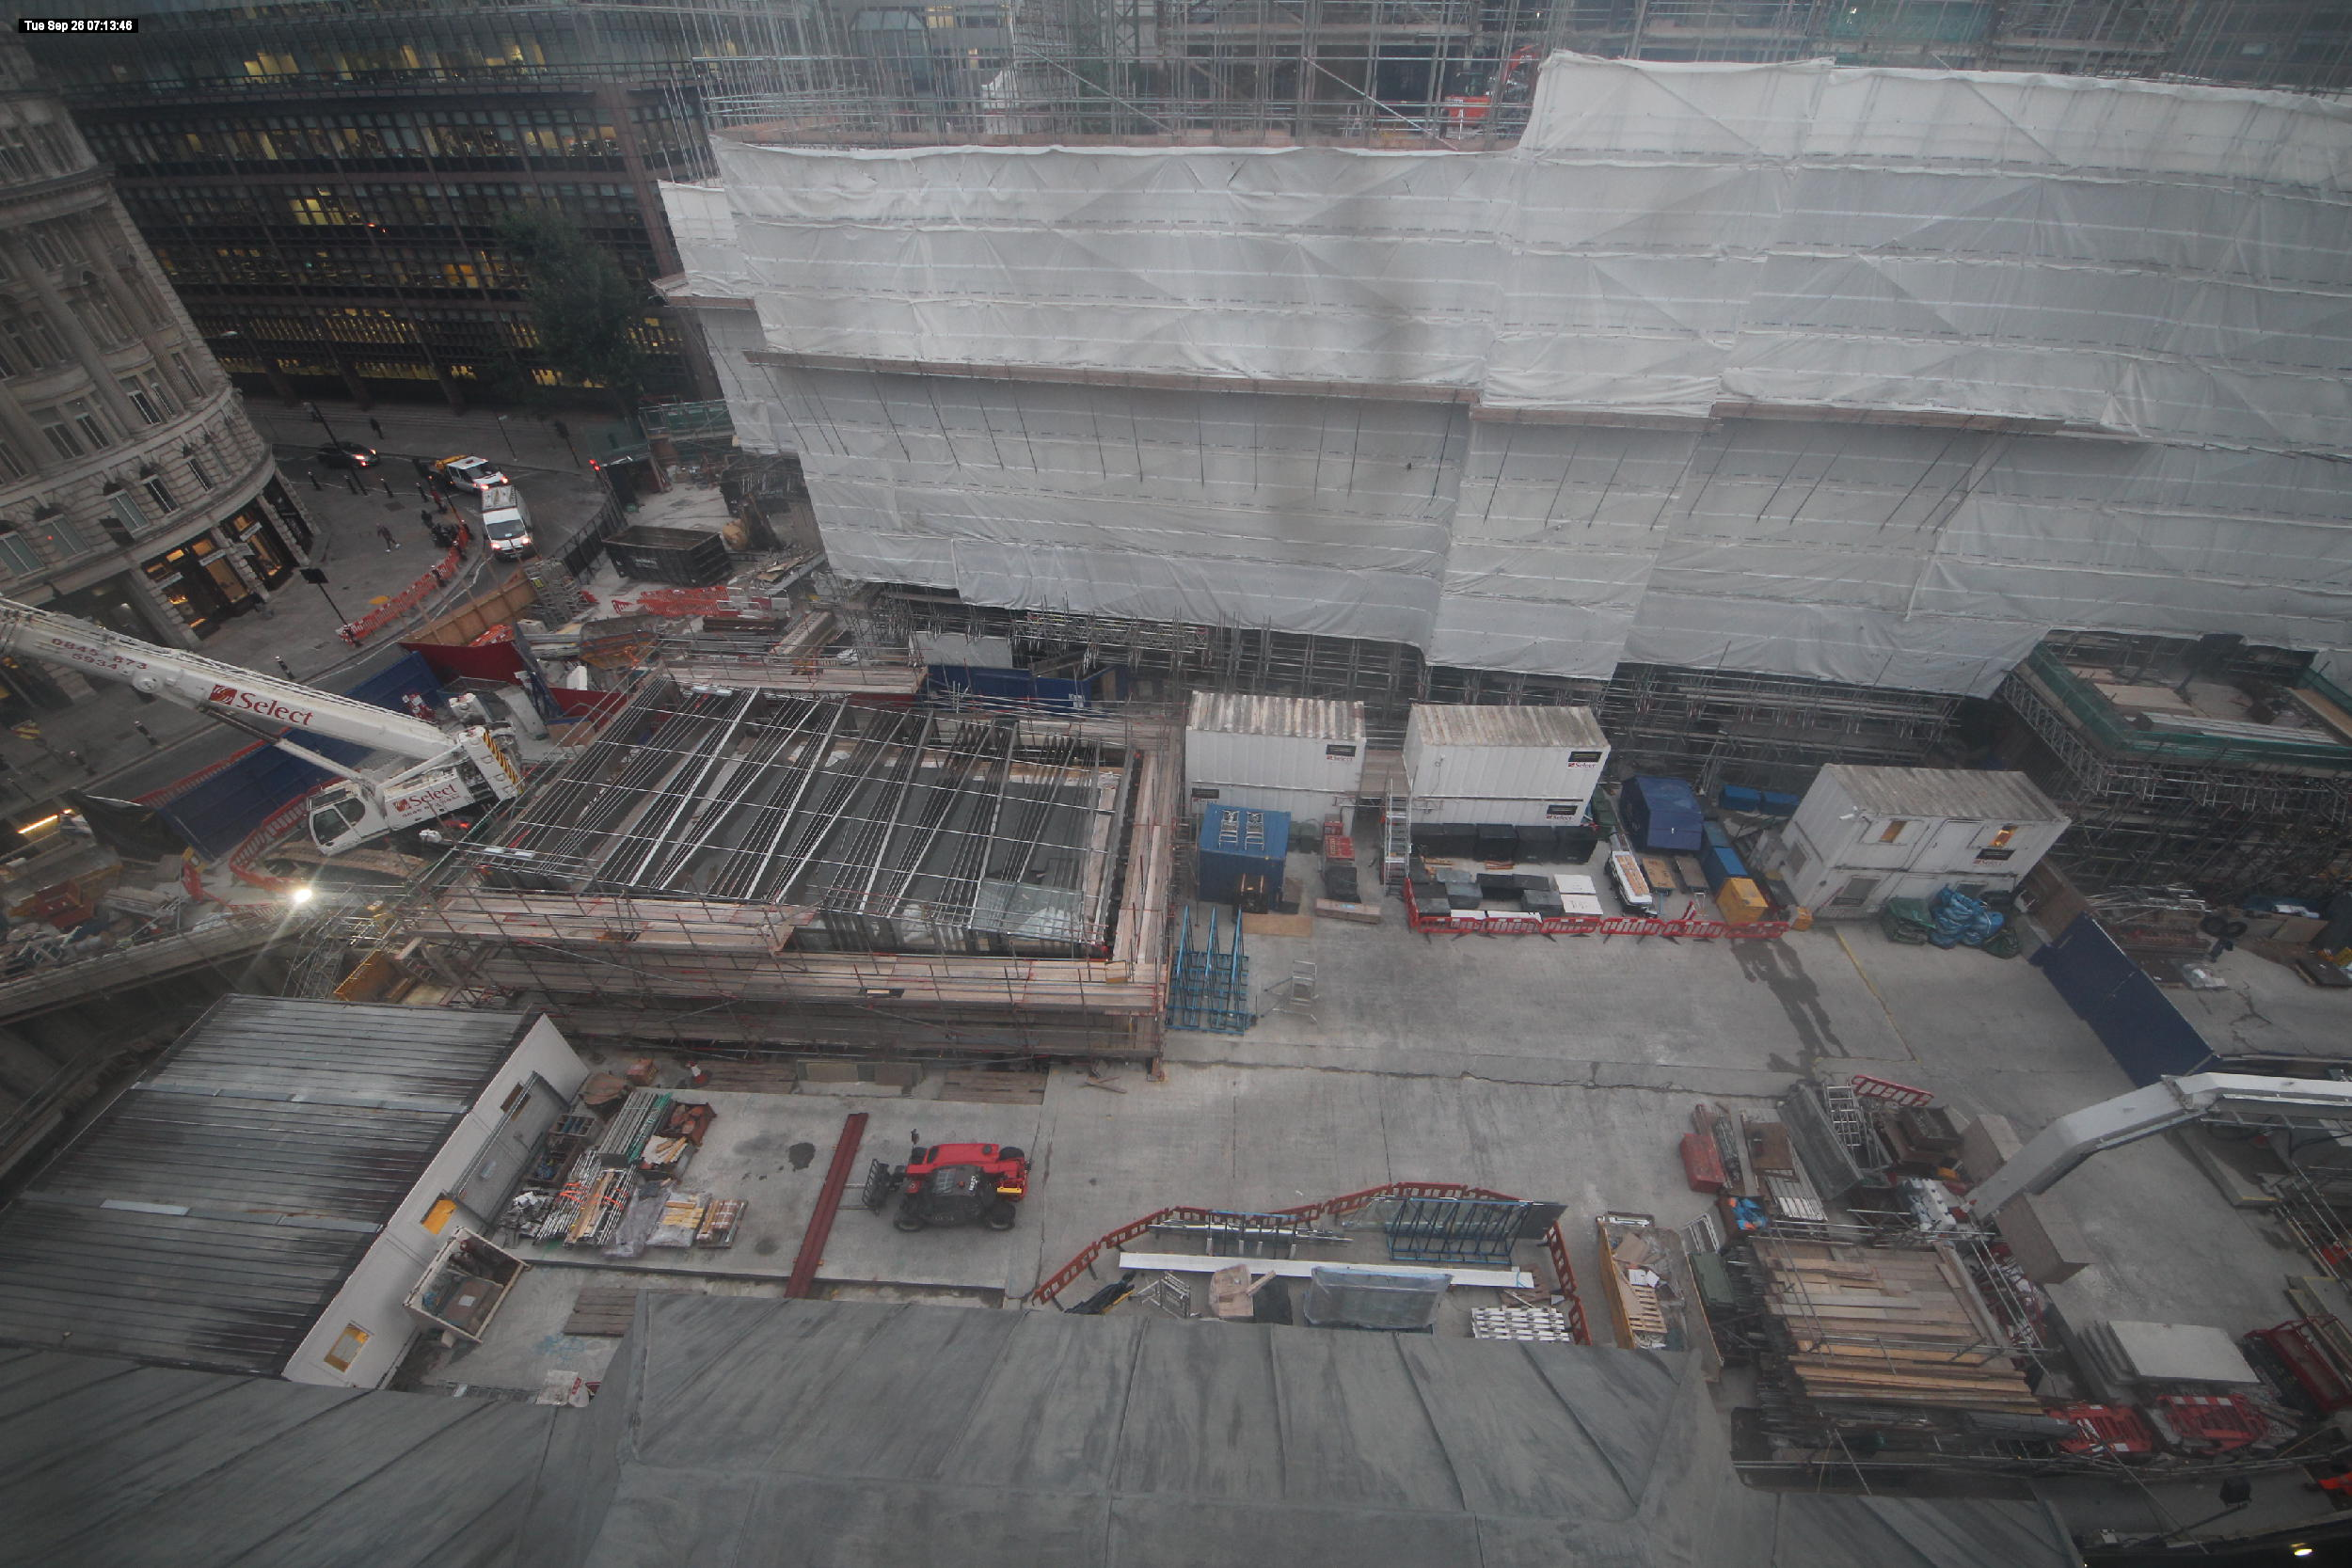 Current works at Liverpool Street Station